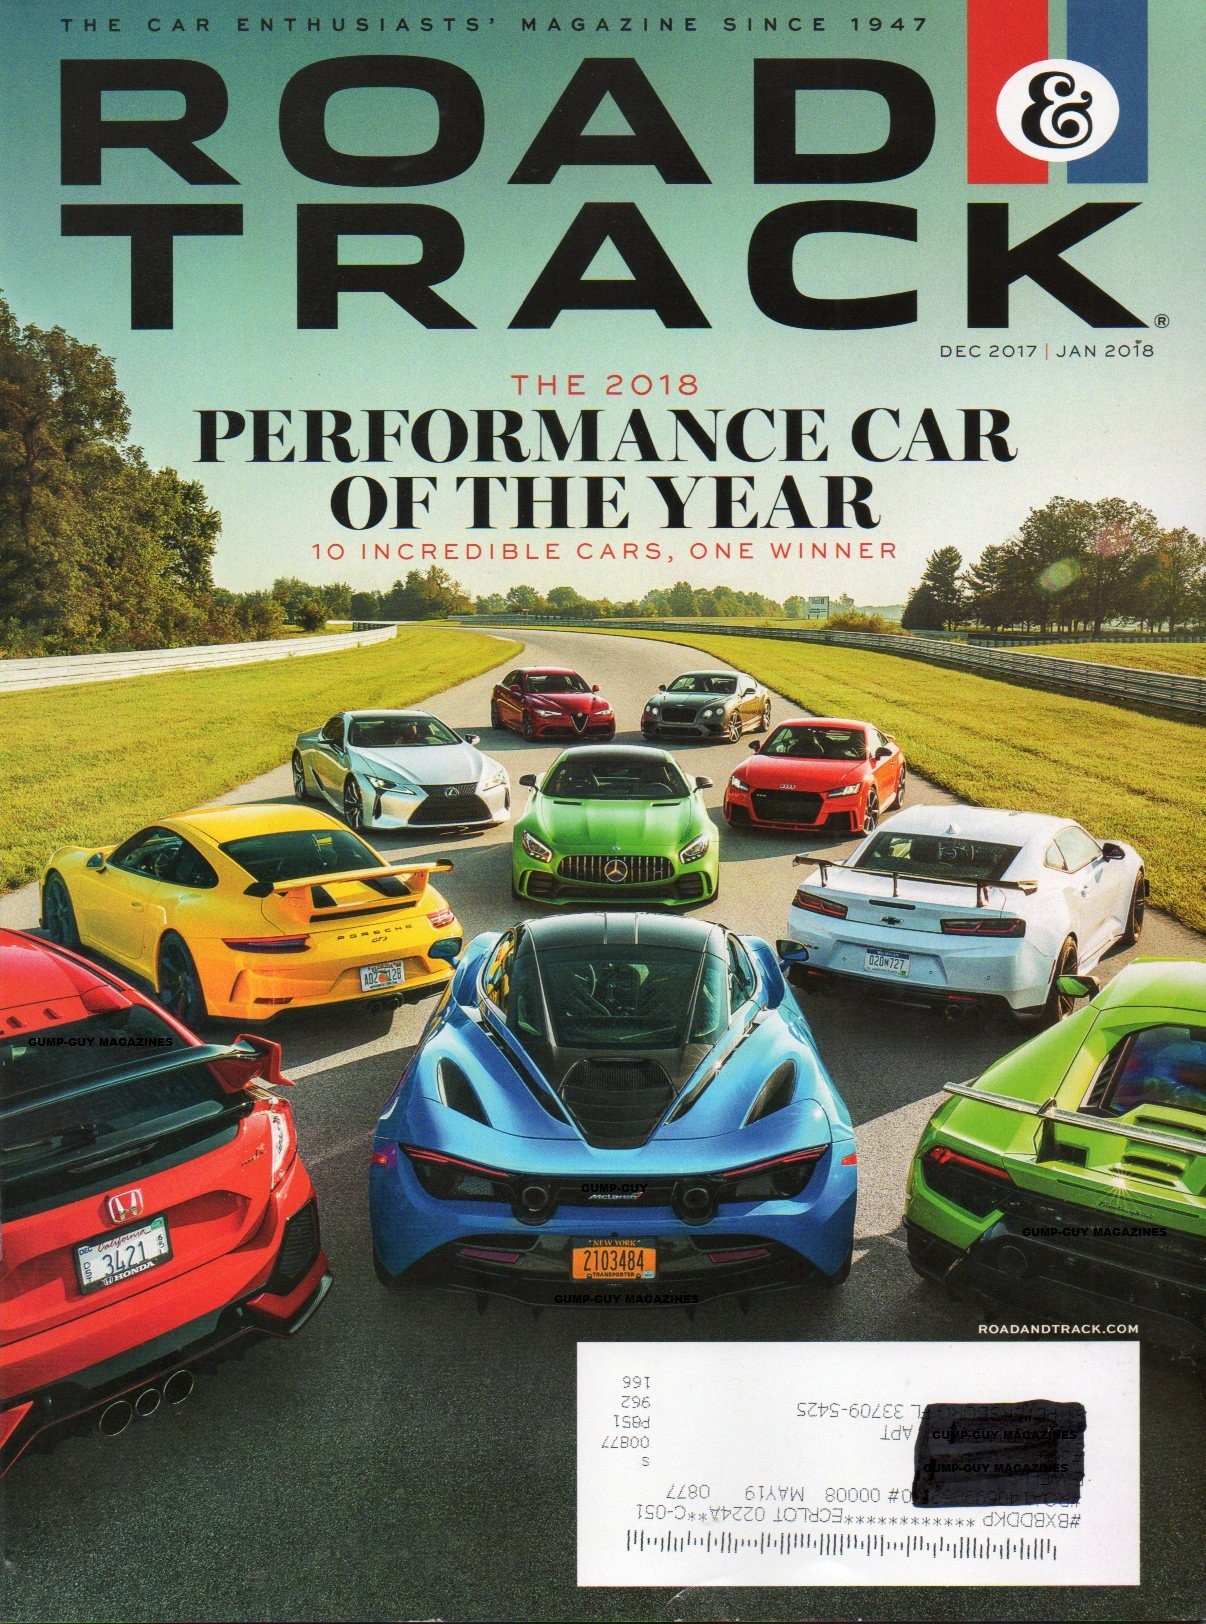 Download THE 2018 CHEVROLET TRAVERSE Audi TT RS lexus lc 500 Road & Track Magazine BENTLEY CONTINENTAL SUPERSPORTS Chevrolet Camaro ZL1 1LE 2017 HONDA CIVIC TYPE R TOURING pdf